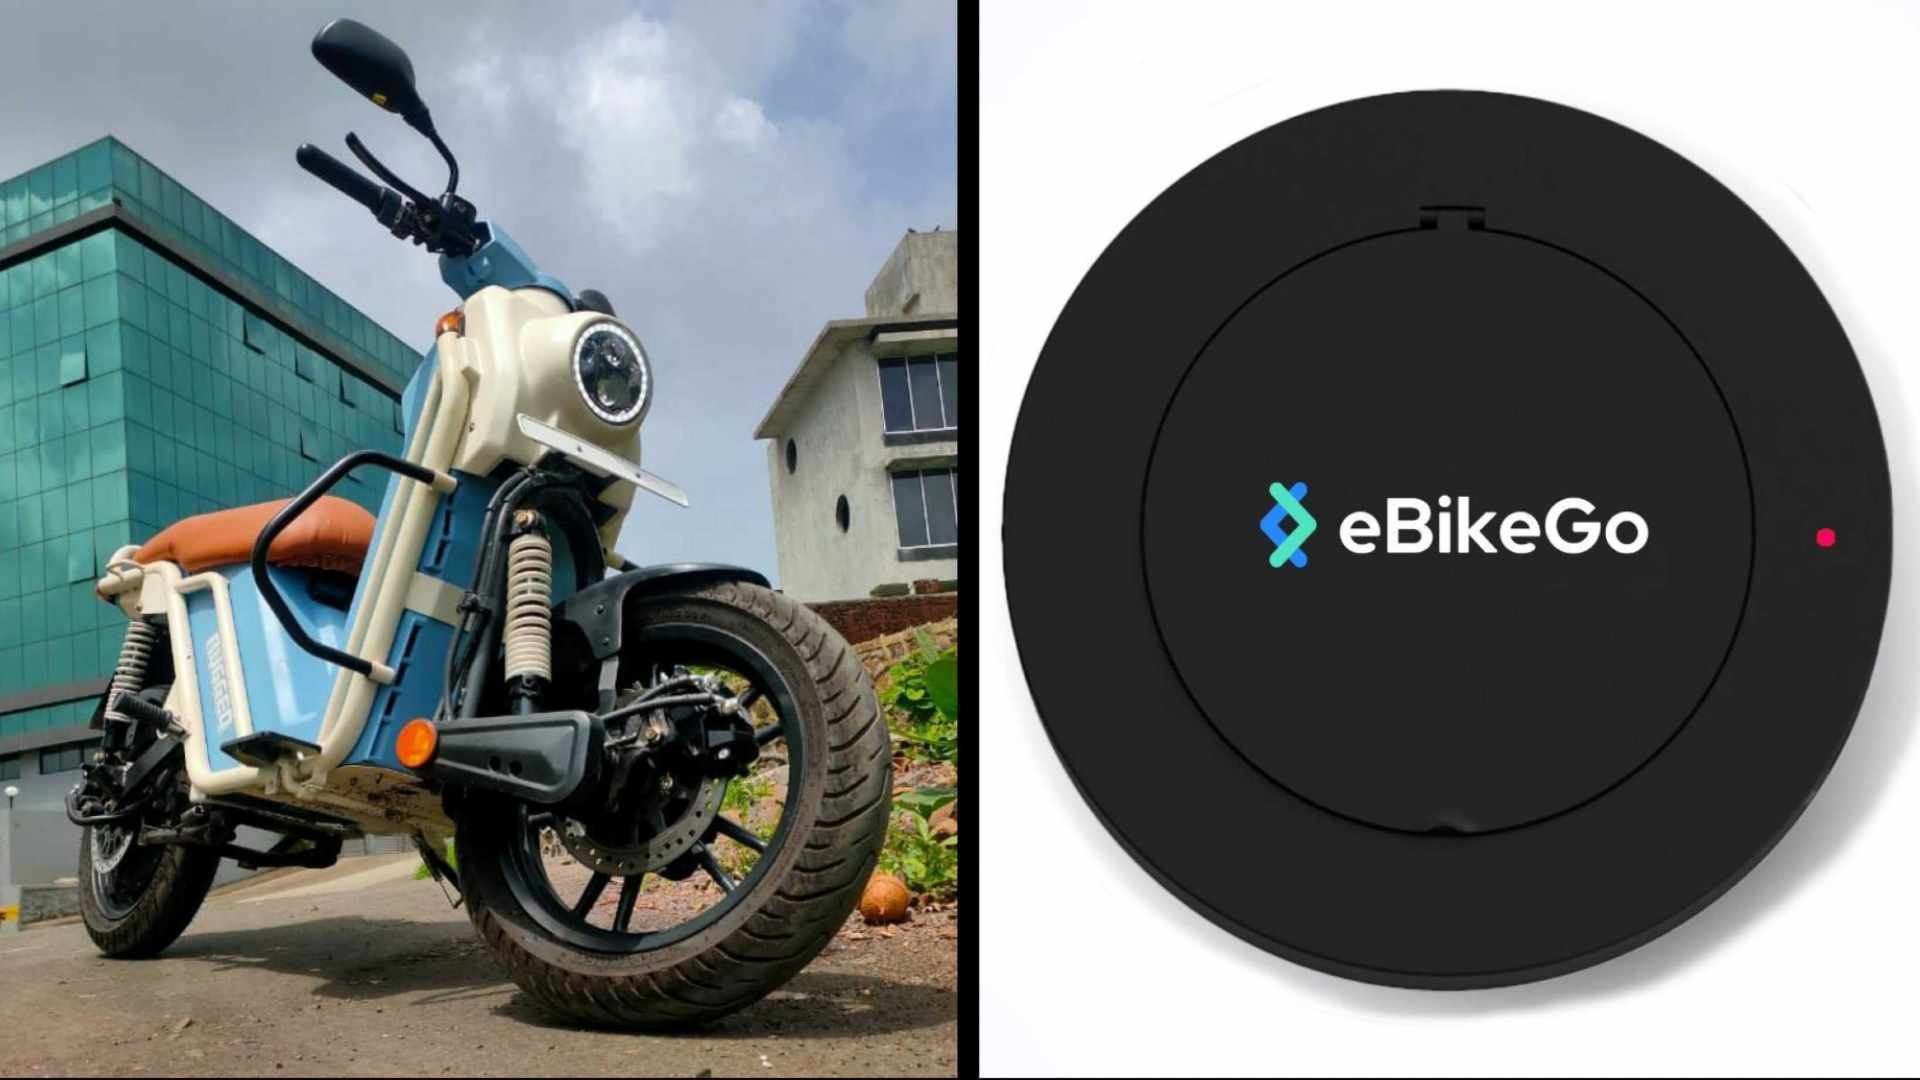 EBikeGo says it will install its connected EV charger every 500 metres. Image: Irfan Khan/EBikeGo